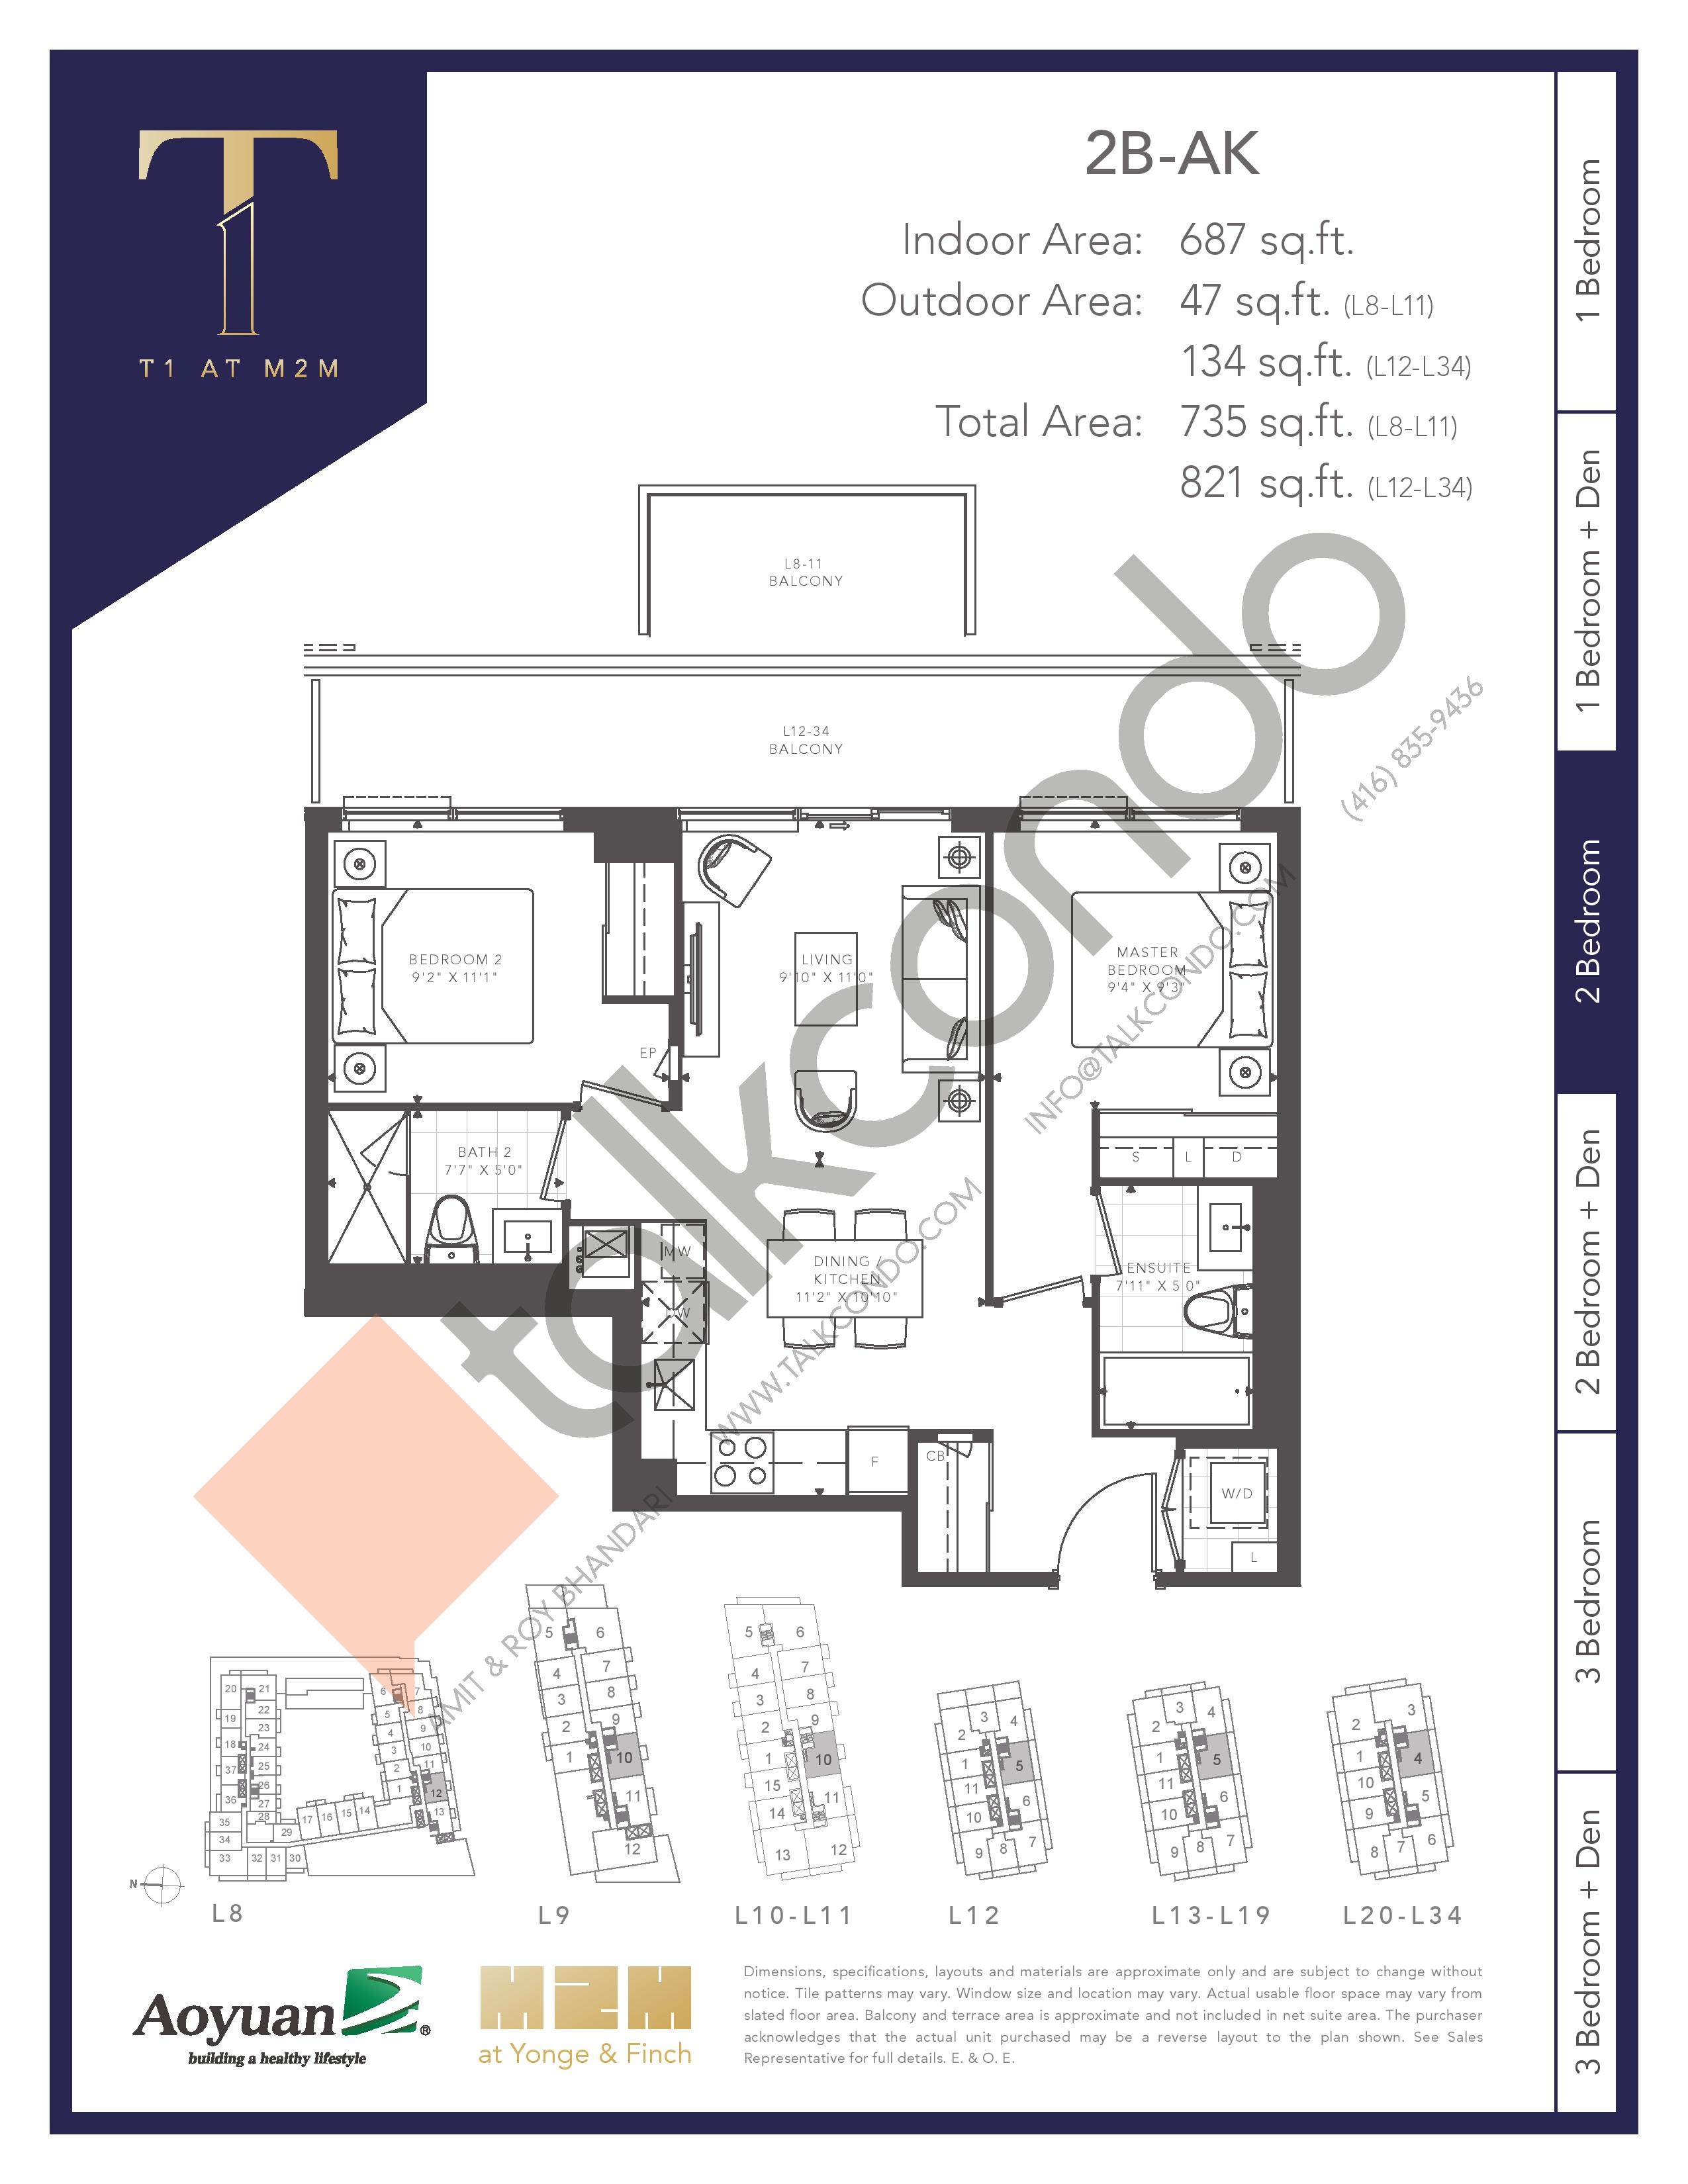 2B-AK (Tower) Floor Plan at T1 at M2M Condos - 687 sq.ft